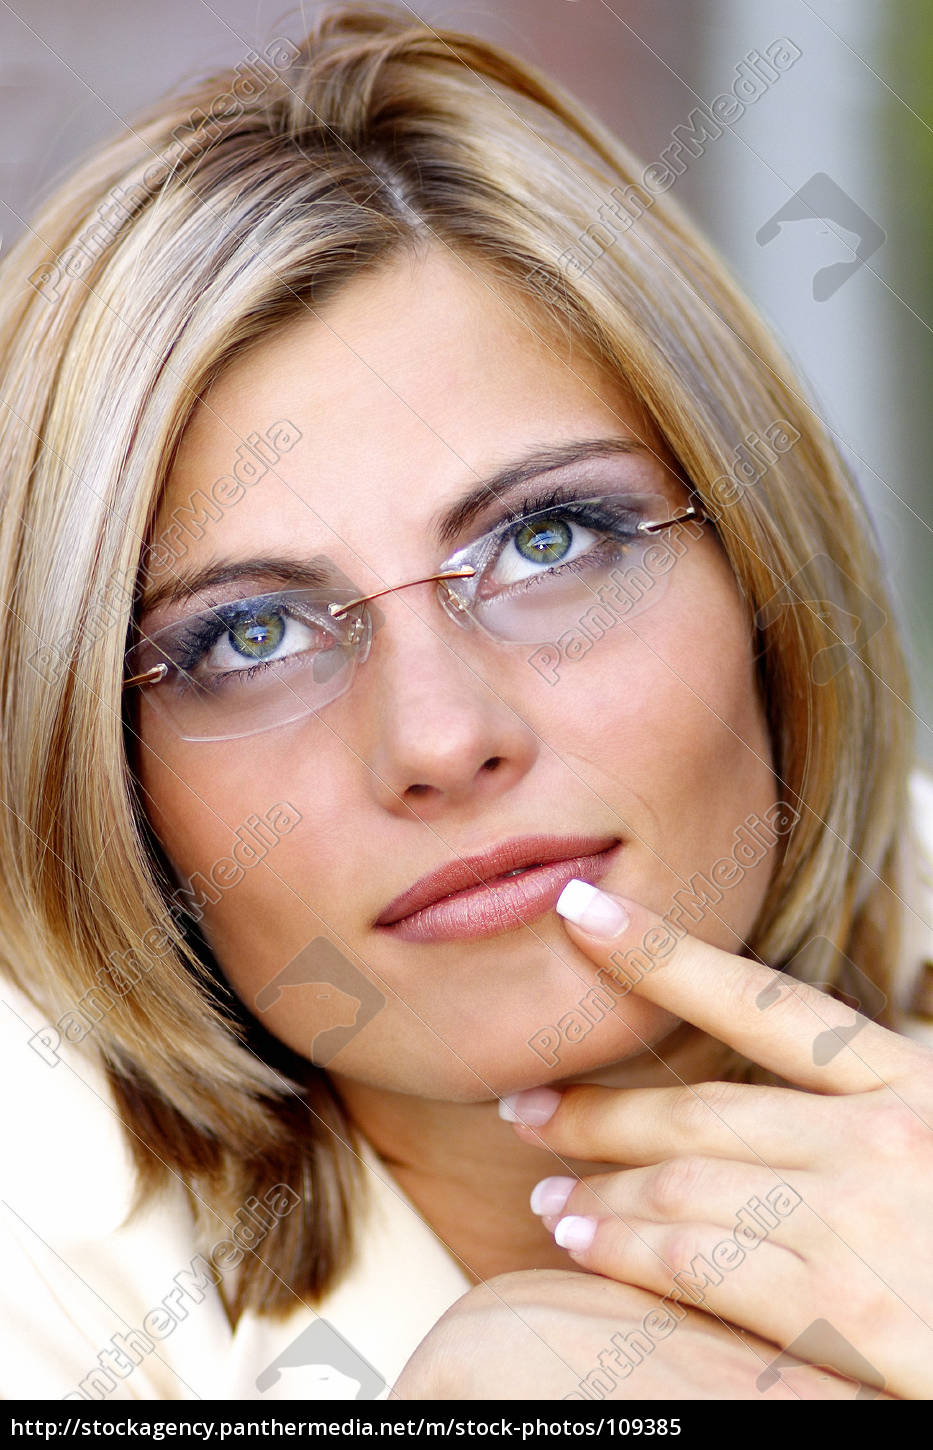 woman, with, glasses, in, business, look - 109385